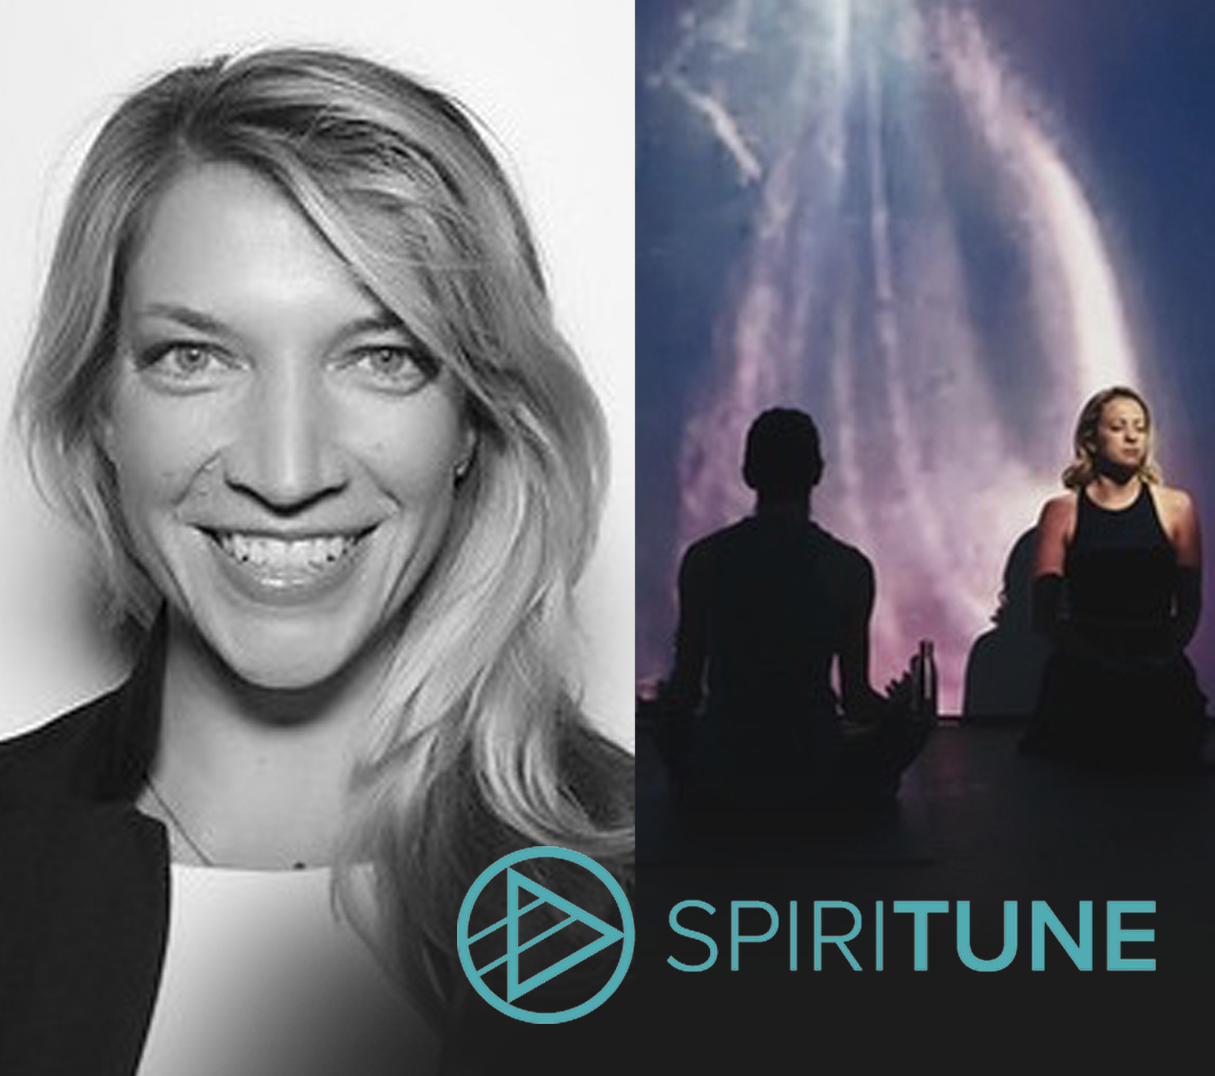 Jamie Pabst showcased the physiological power of music to support emotional health. Spiritune is harnessing the neurological underpinnings of music that targets our deeper human needs, such as emotional regulation, stress reduction, performance and overall happiness.